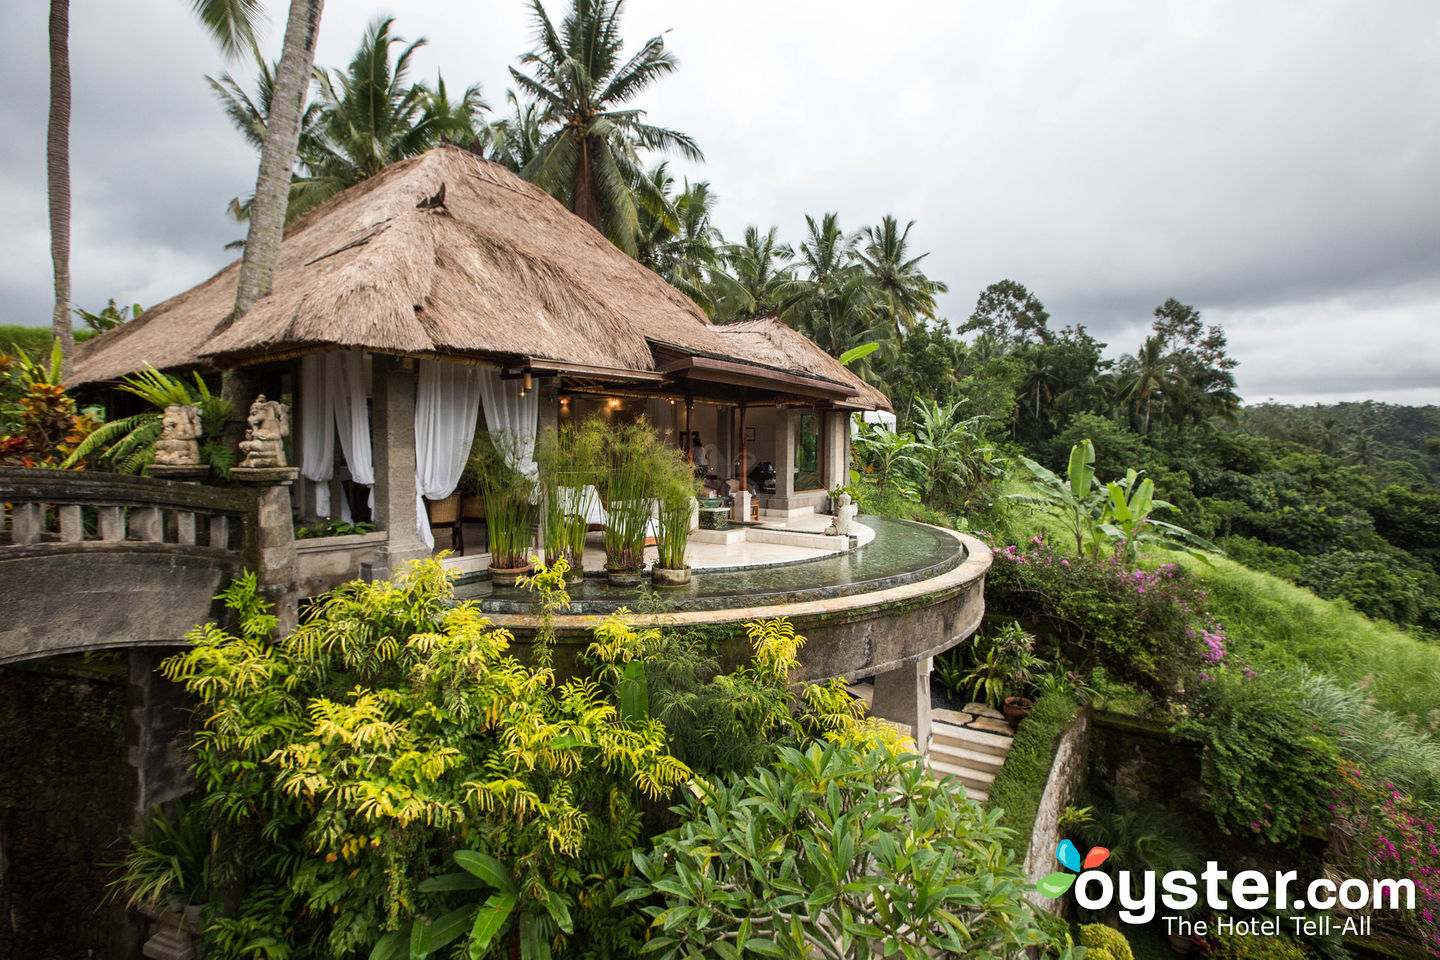 The rooms and numerous facilities, such as the spa (pictured above), overlook lush valleys.